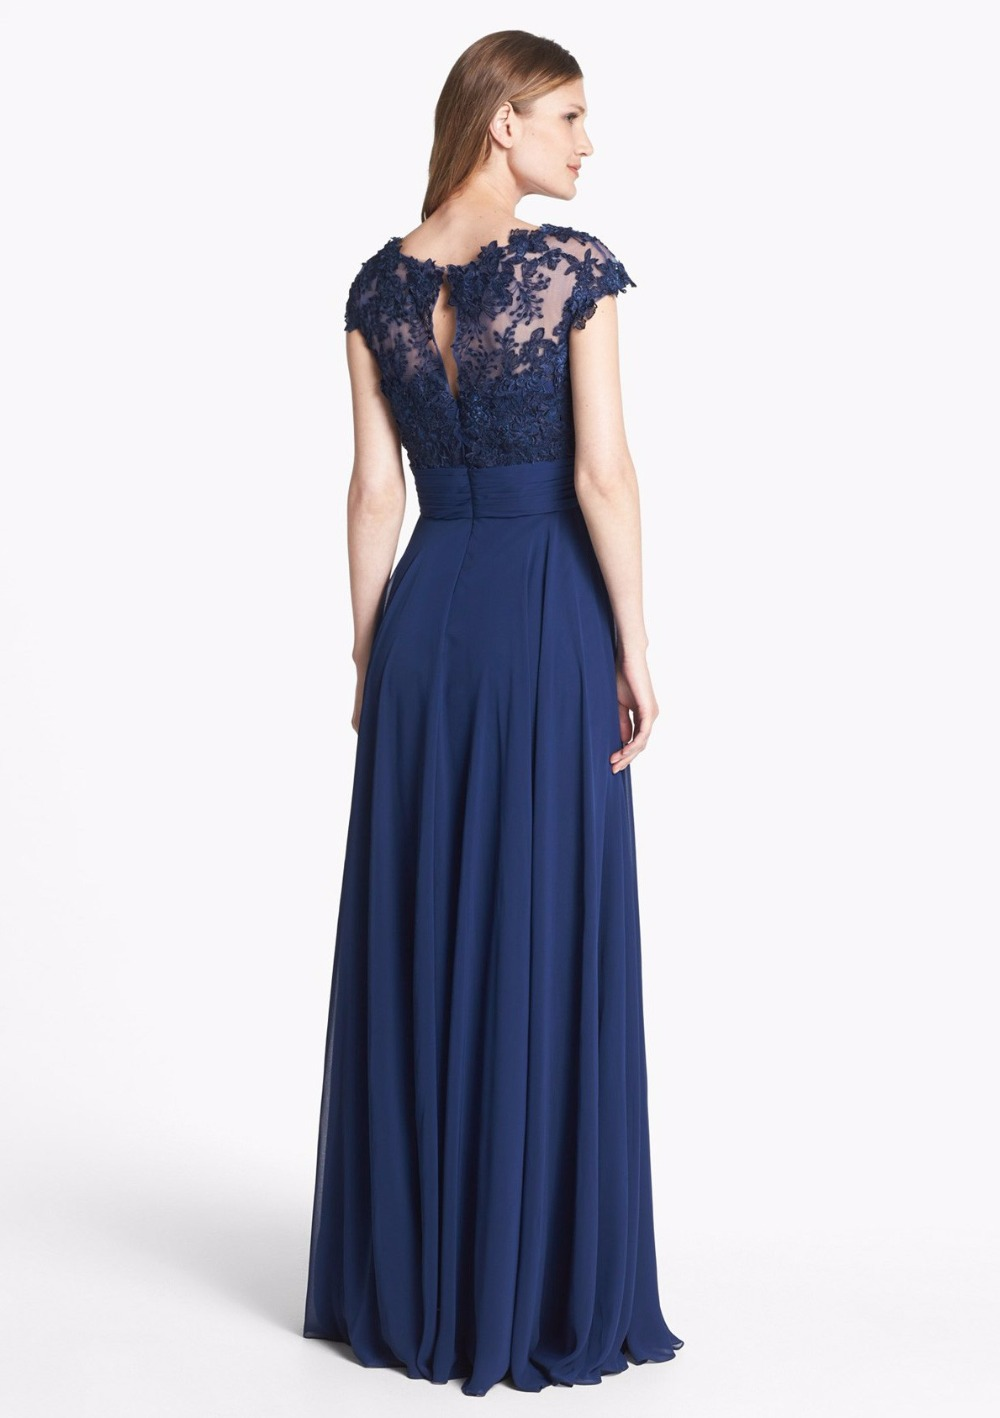 Navy Blue Lace Chiffon Long Modest Bridesmaid Dresses Cap Sleeves Summer Formal  Wedding Party Dress Maids of Honor Dresses-in Bridesmaid Dresses from ... d545ccd189ef